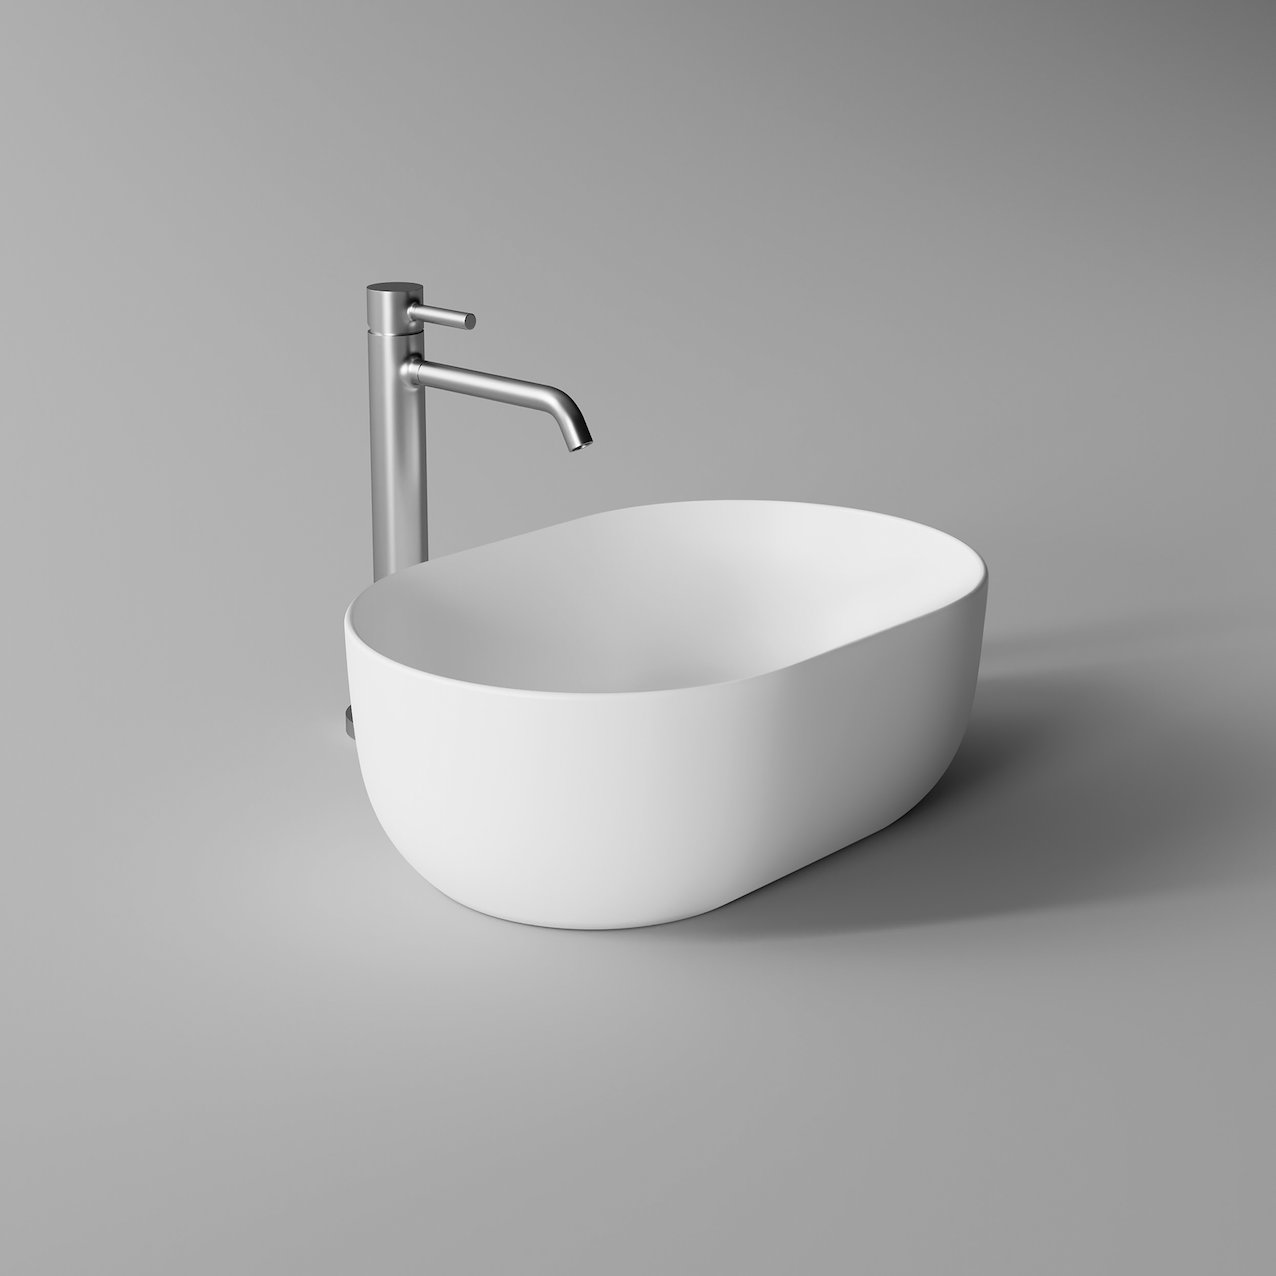 Washbasin UNICA oval 45